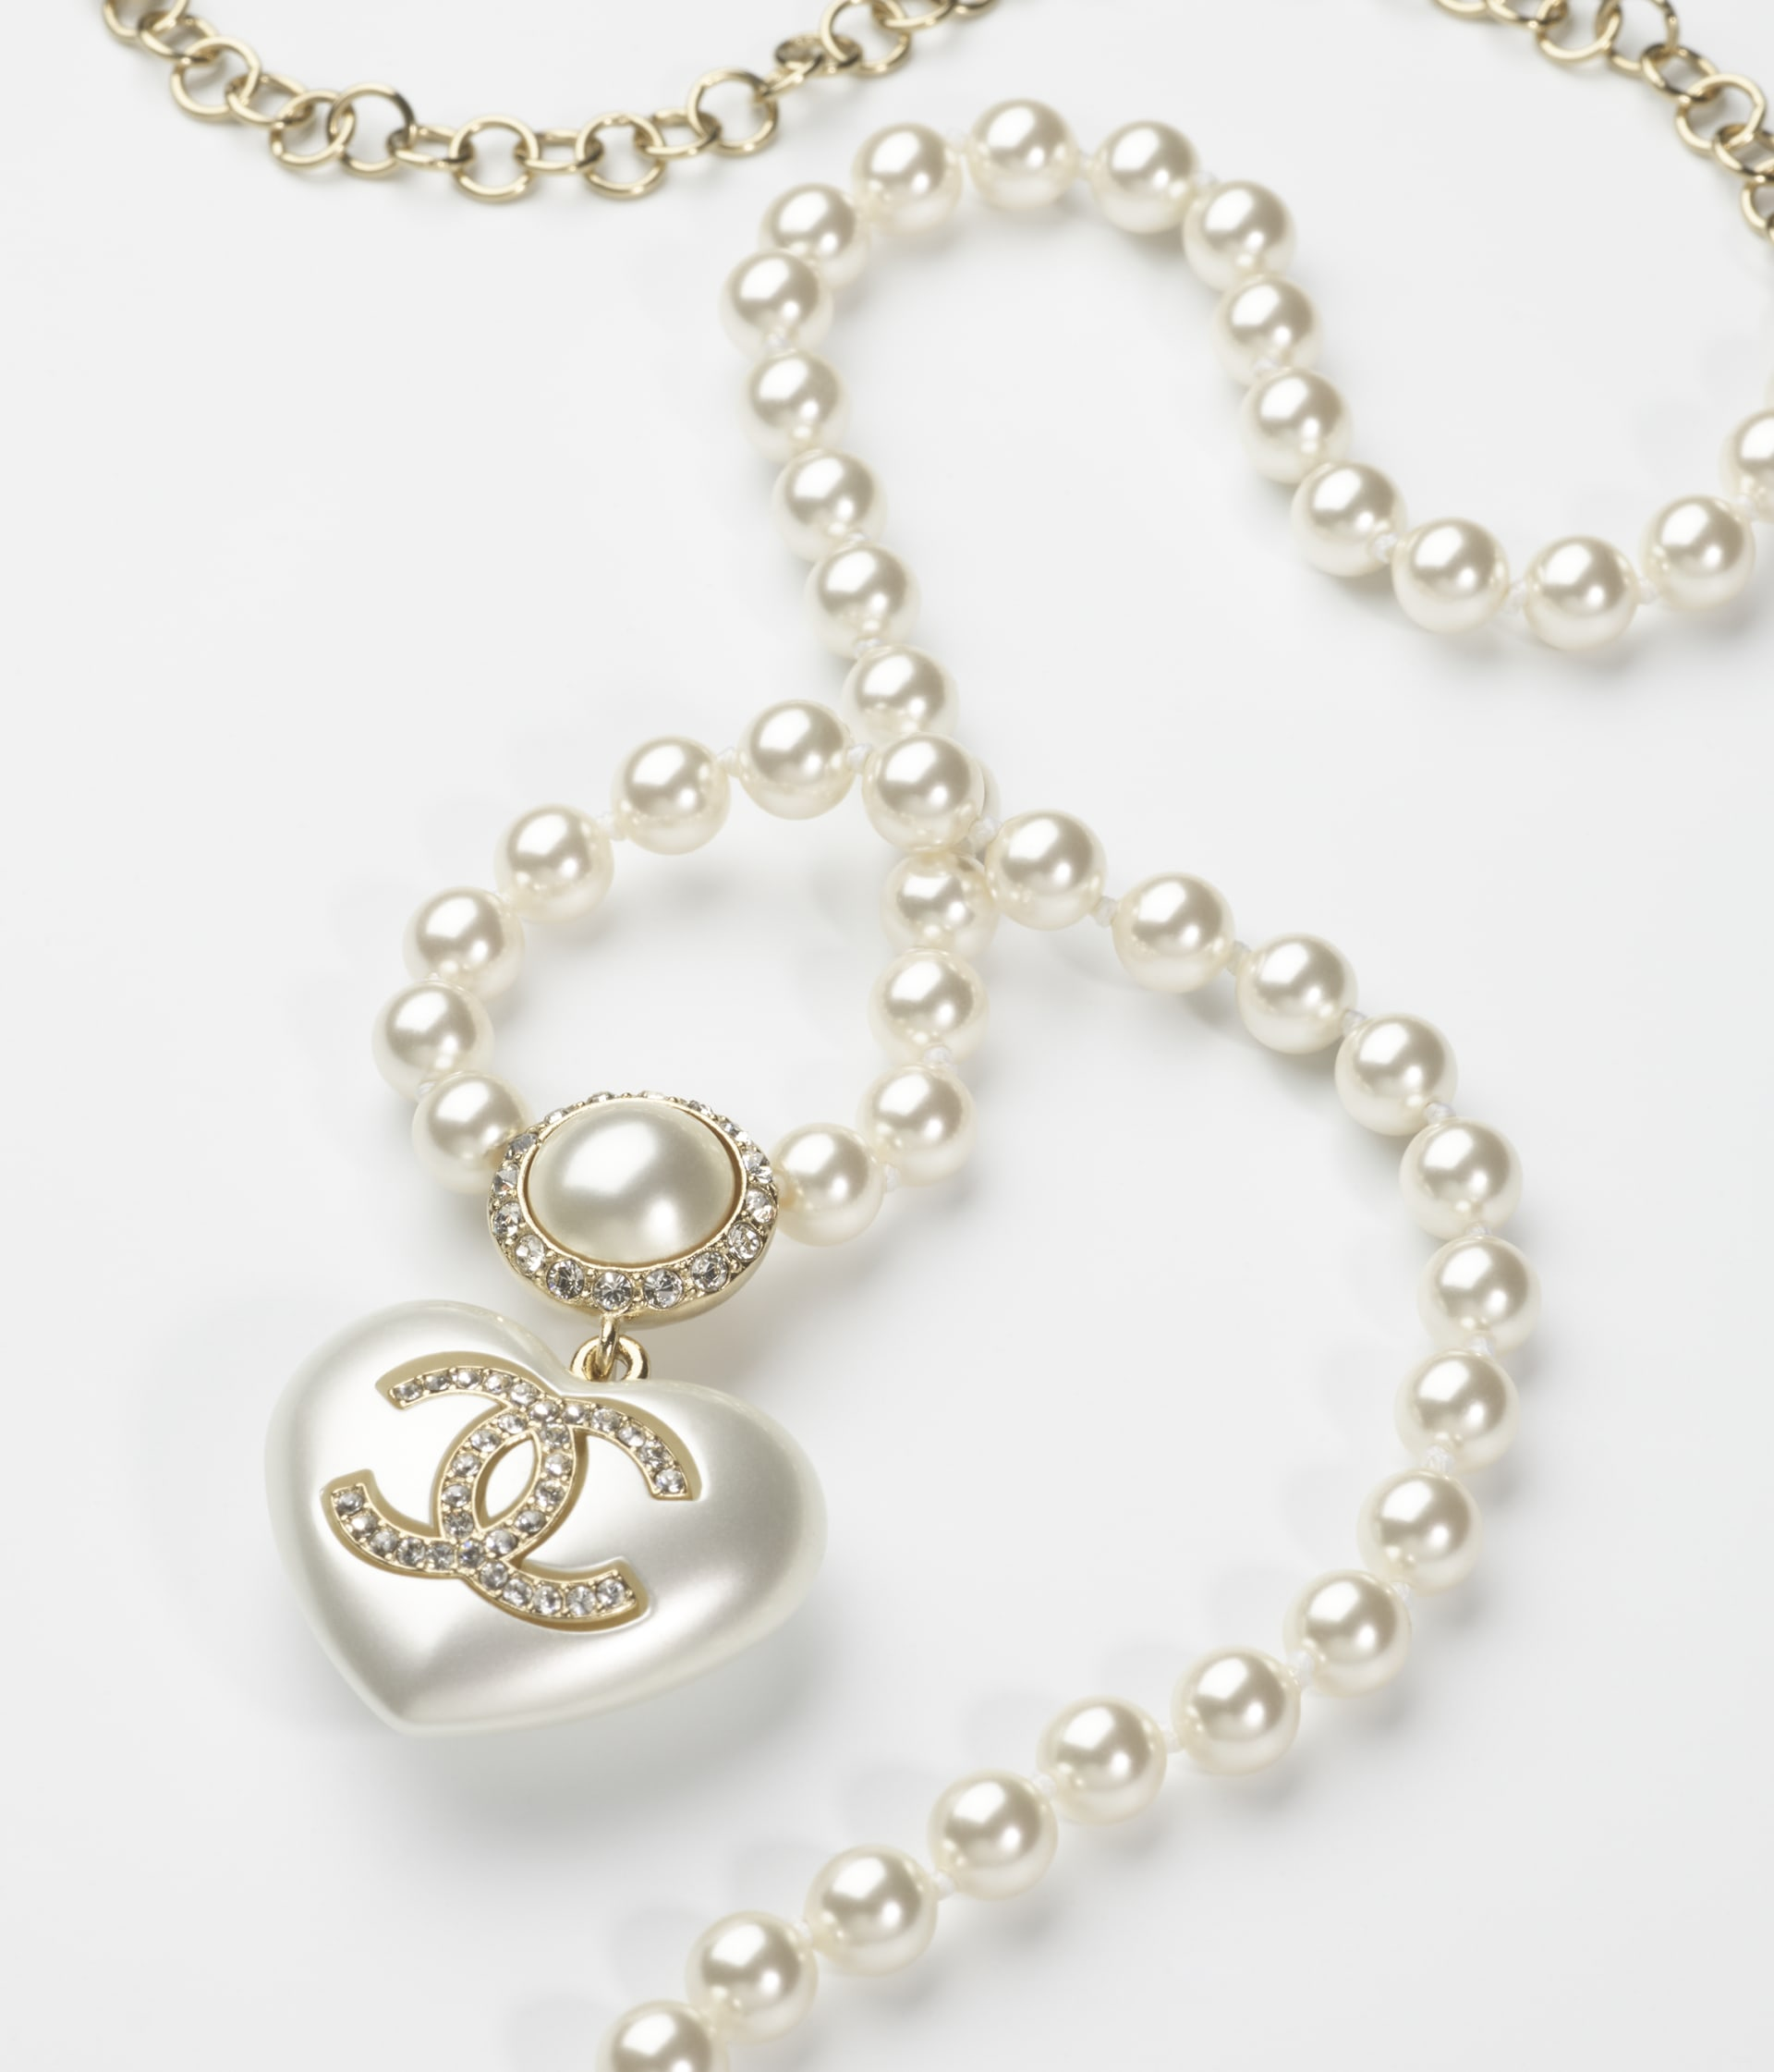 image 2 - Necklace - Metal, Resin, Imitation Pearls, Glass Pearls & Strass - Gold, Pearly White & Crystal